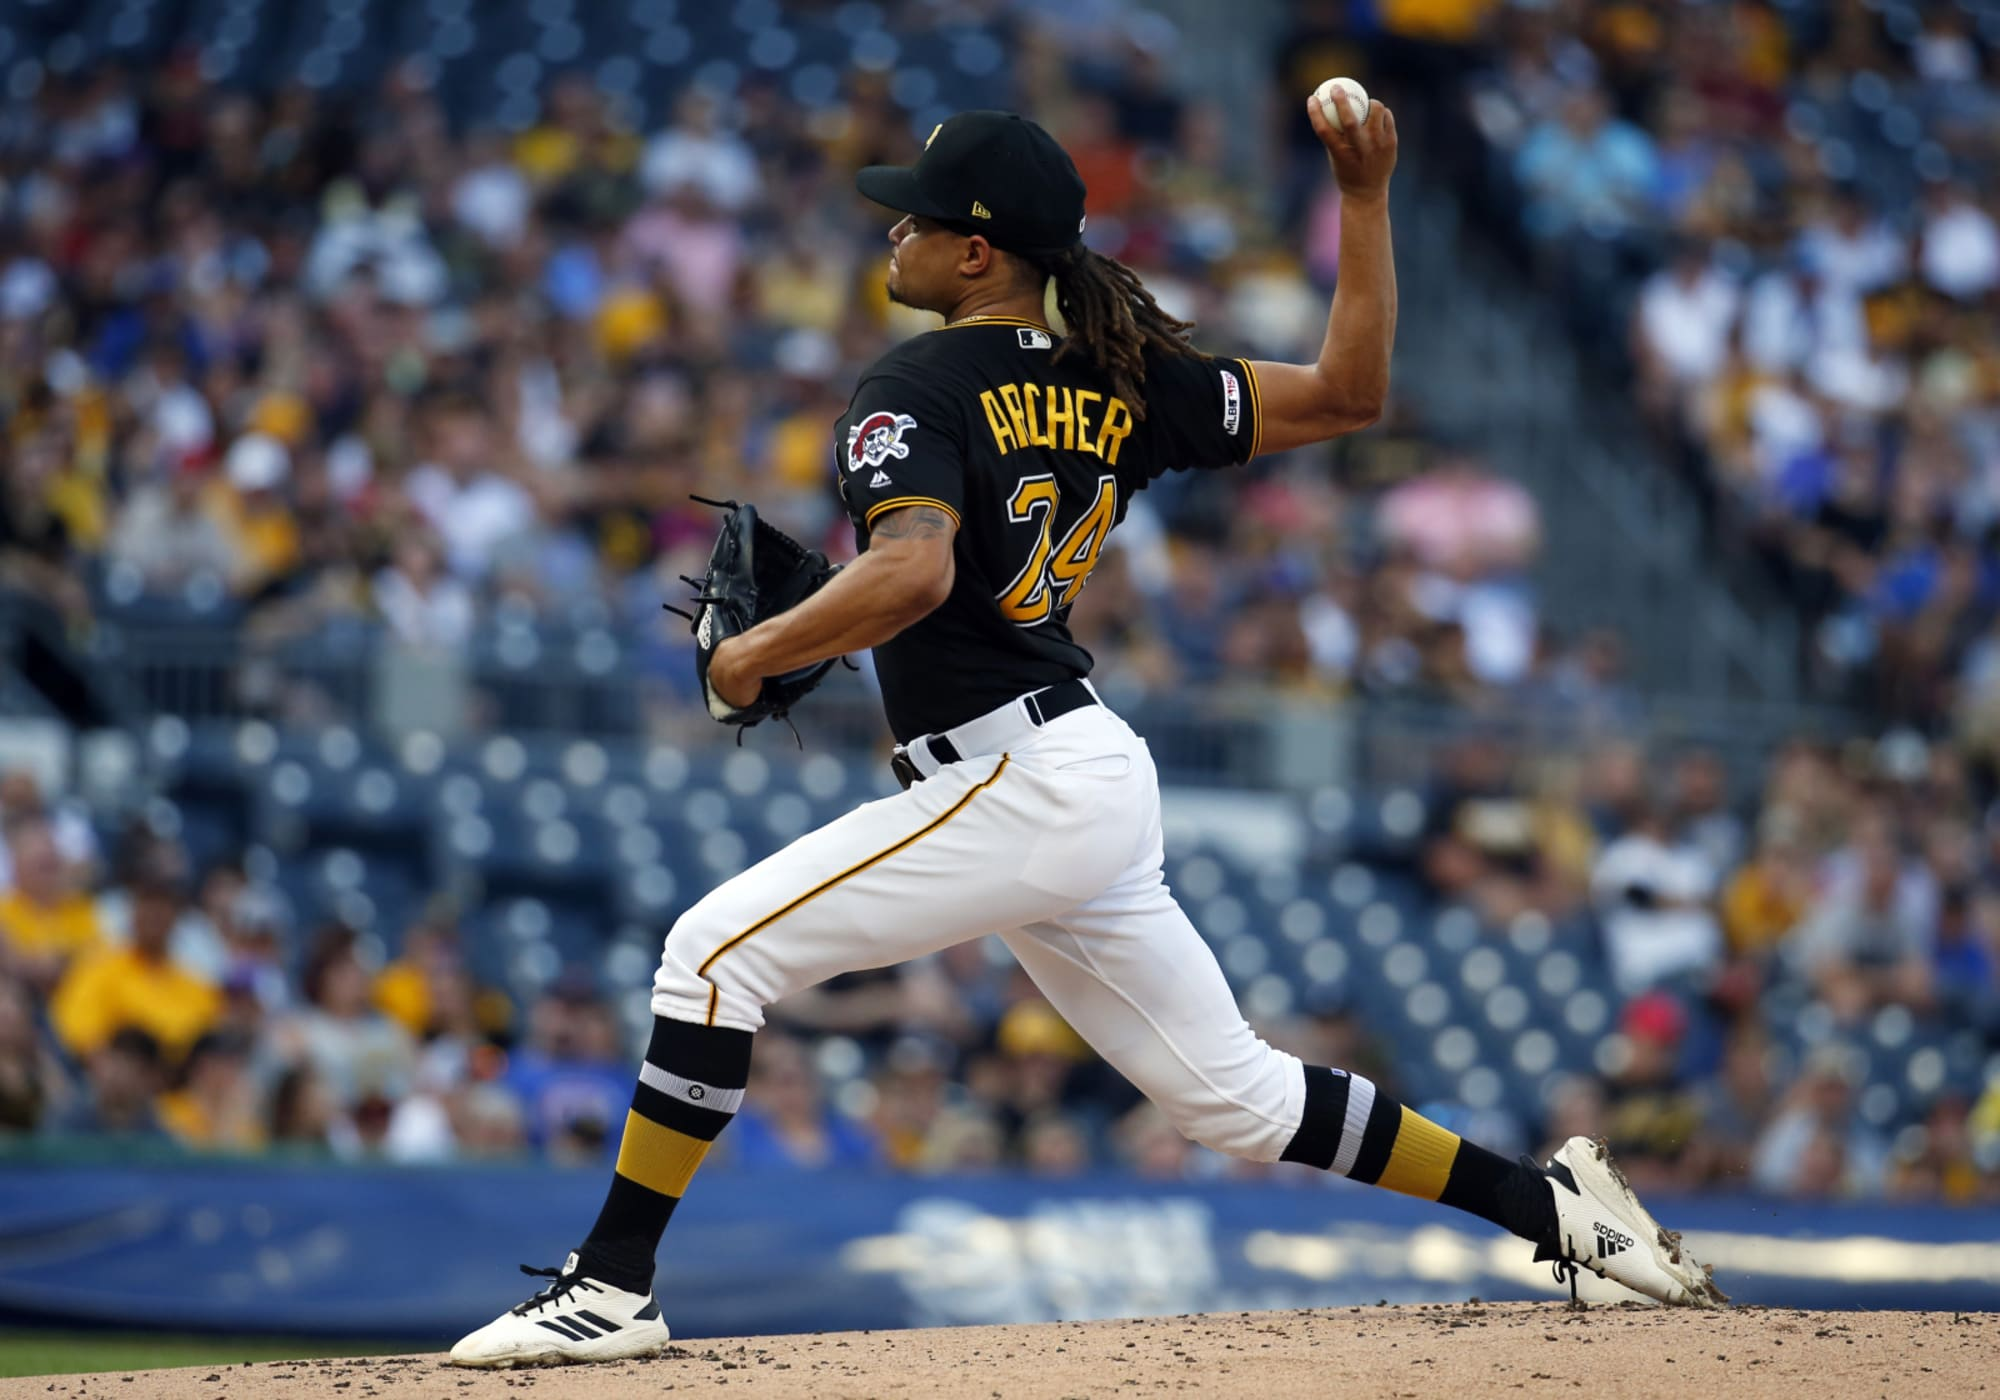 who s to blame for pittsburgh pirates pitching woes pittsburgh pirates pitching woes